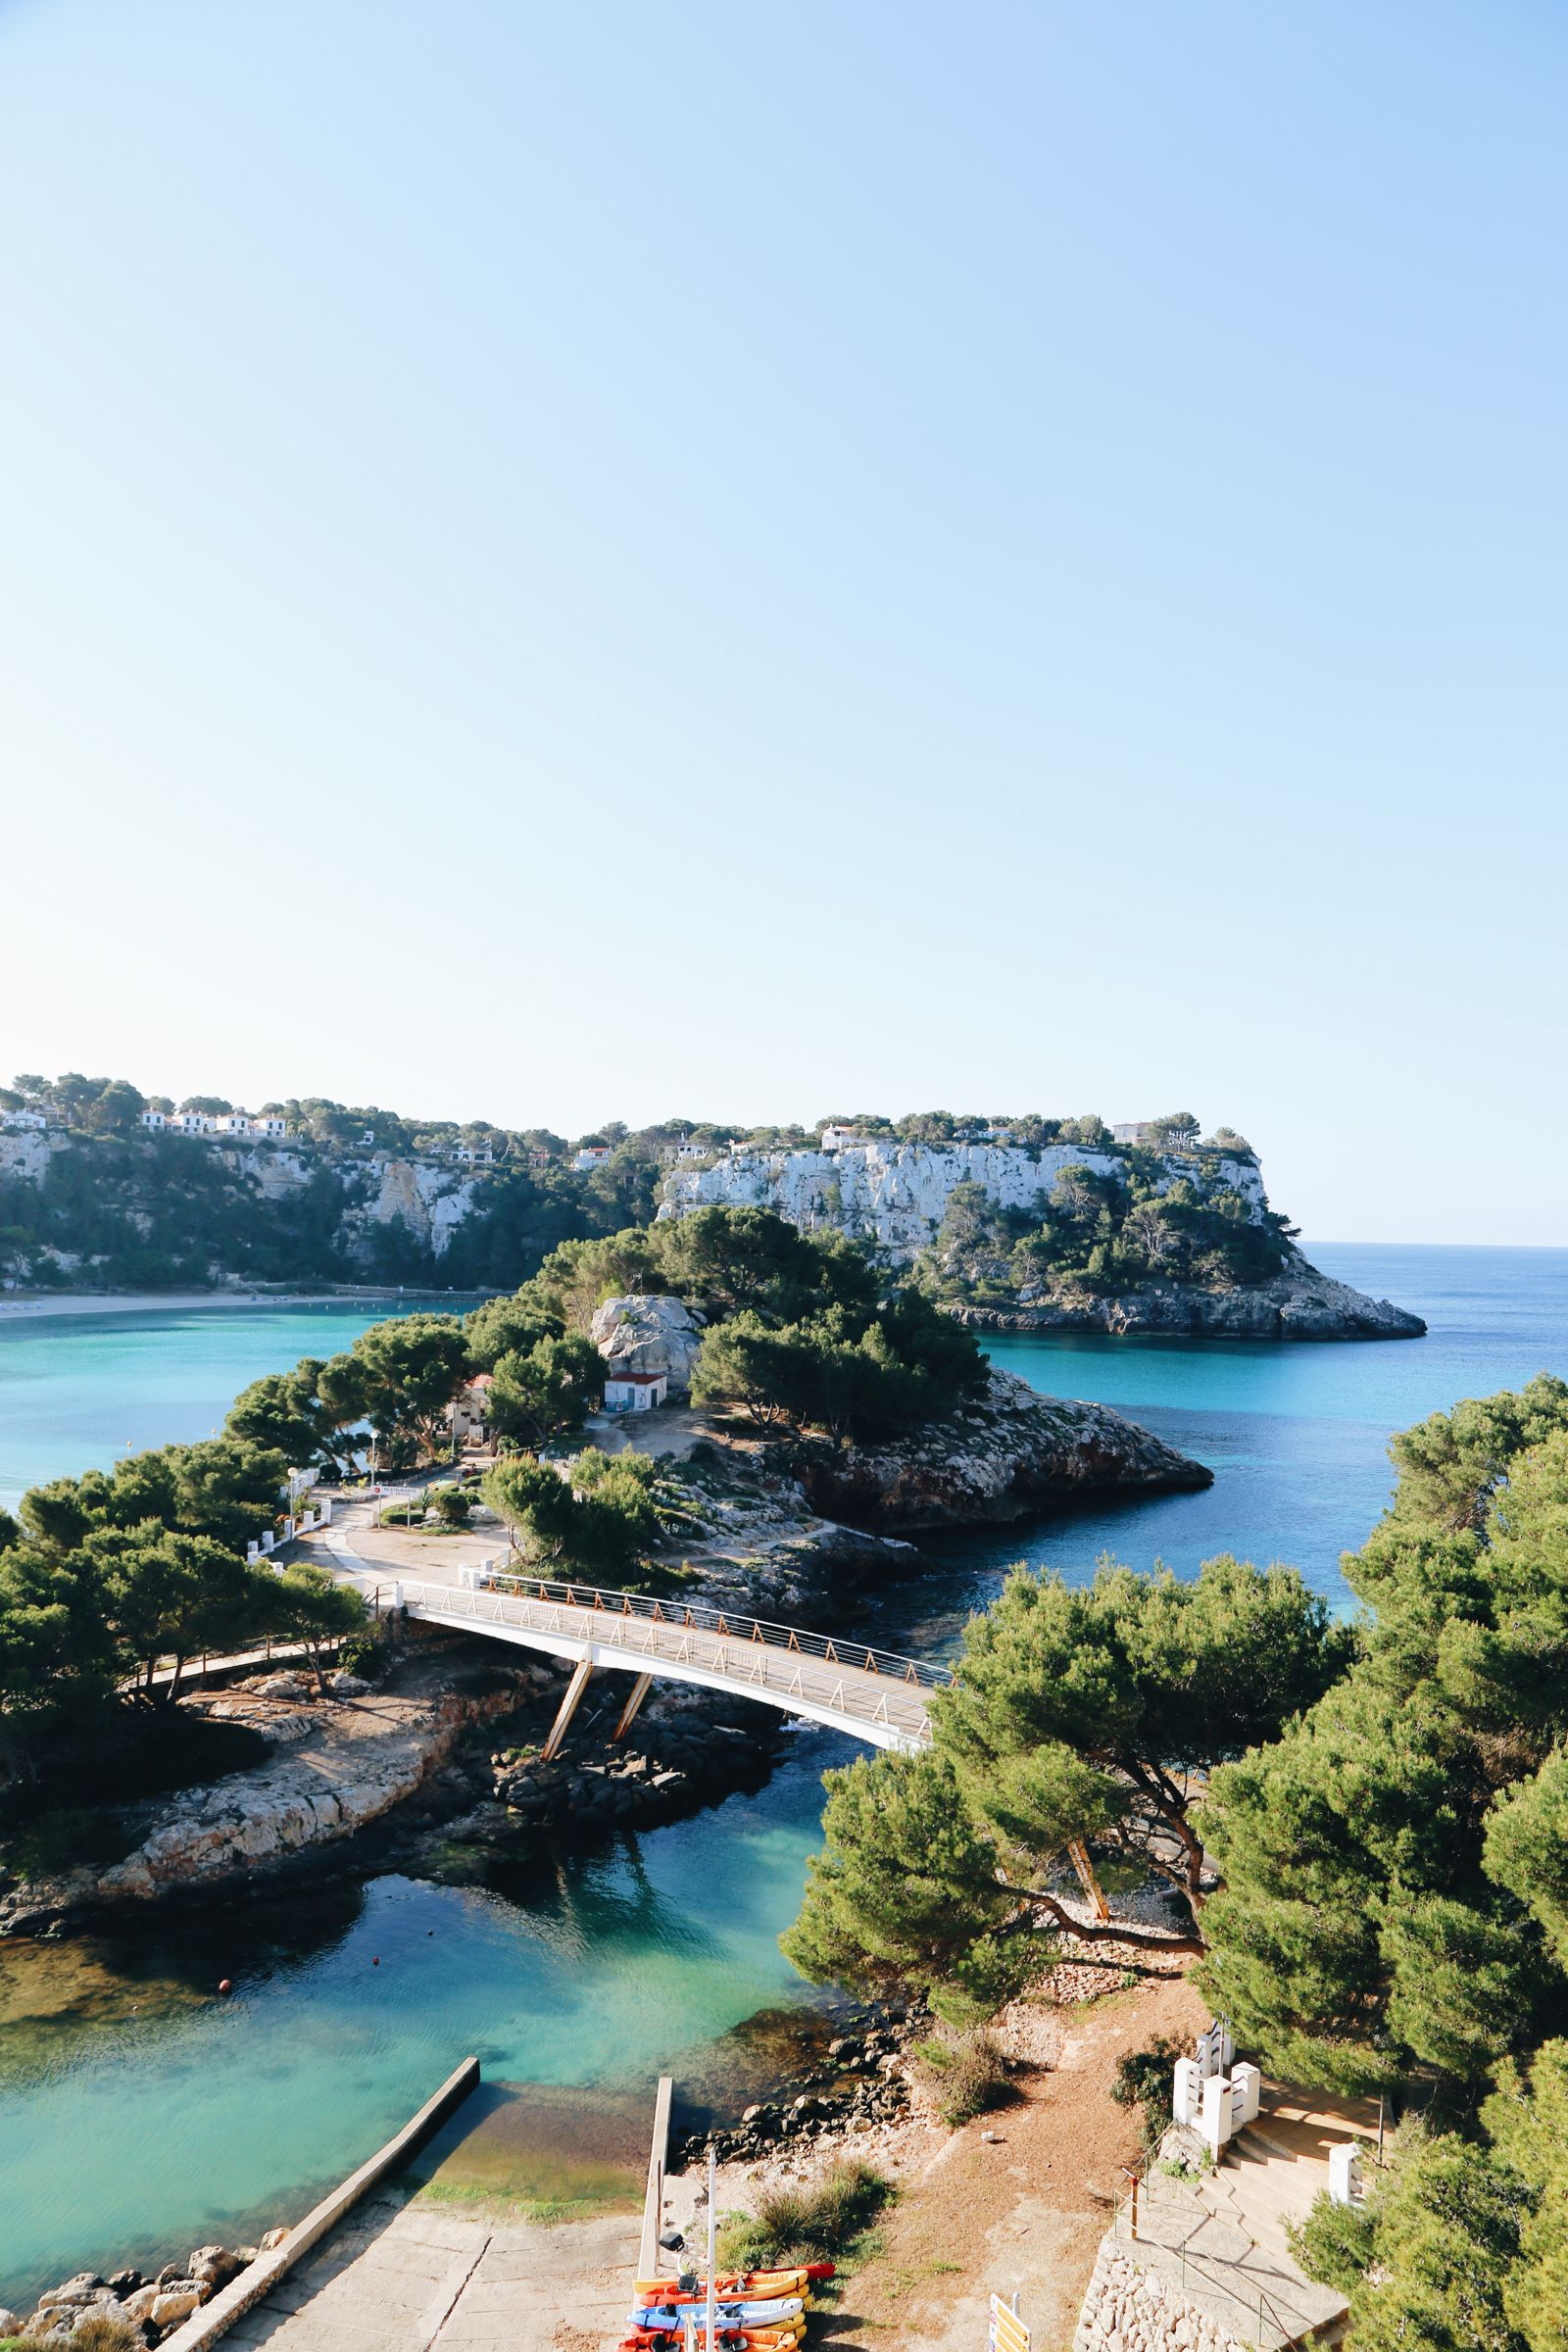 Ever Wondered What The Spanish Island Of Menorca Looks Like? Well Here It is... (1)